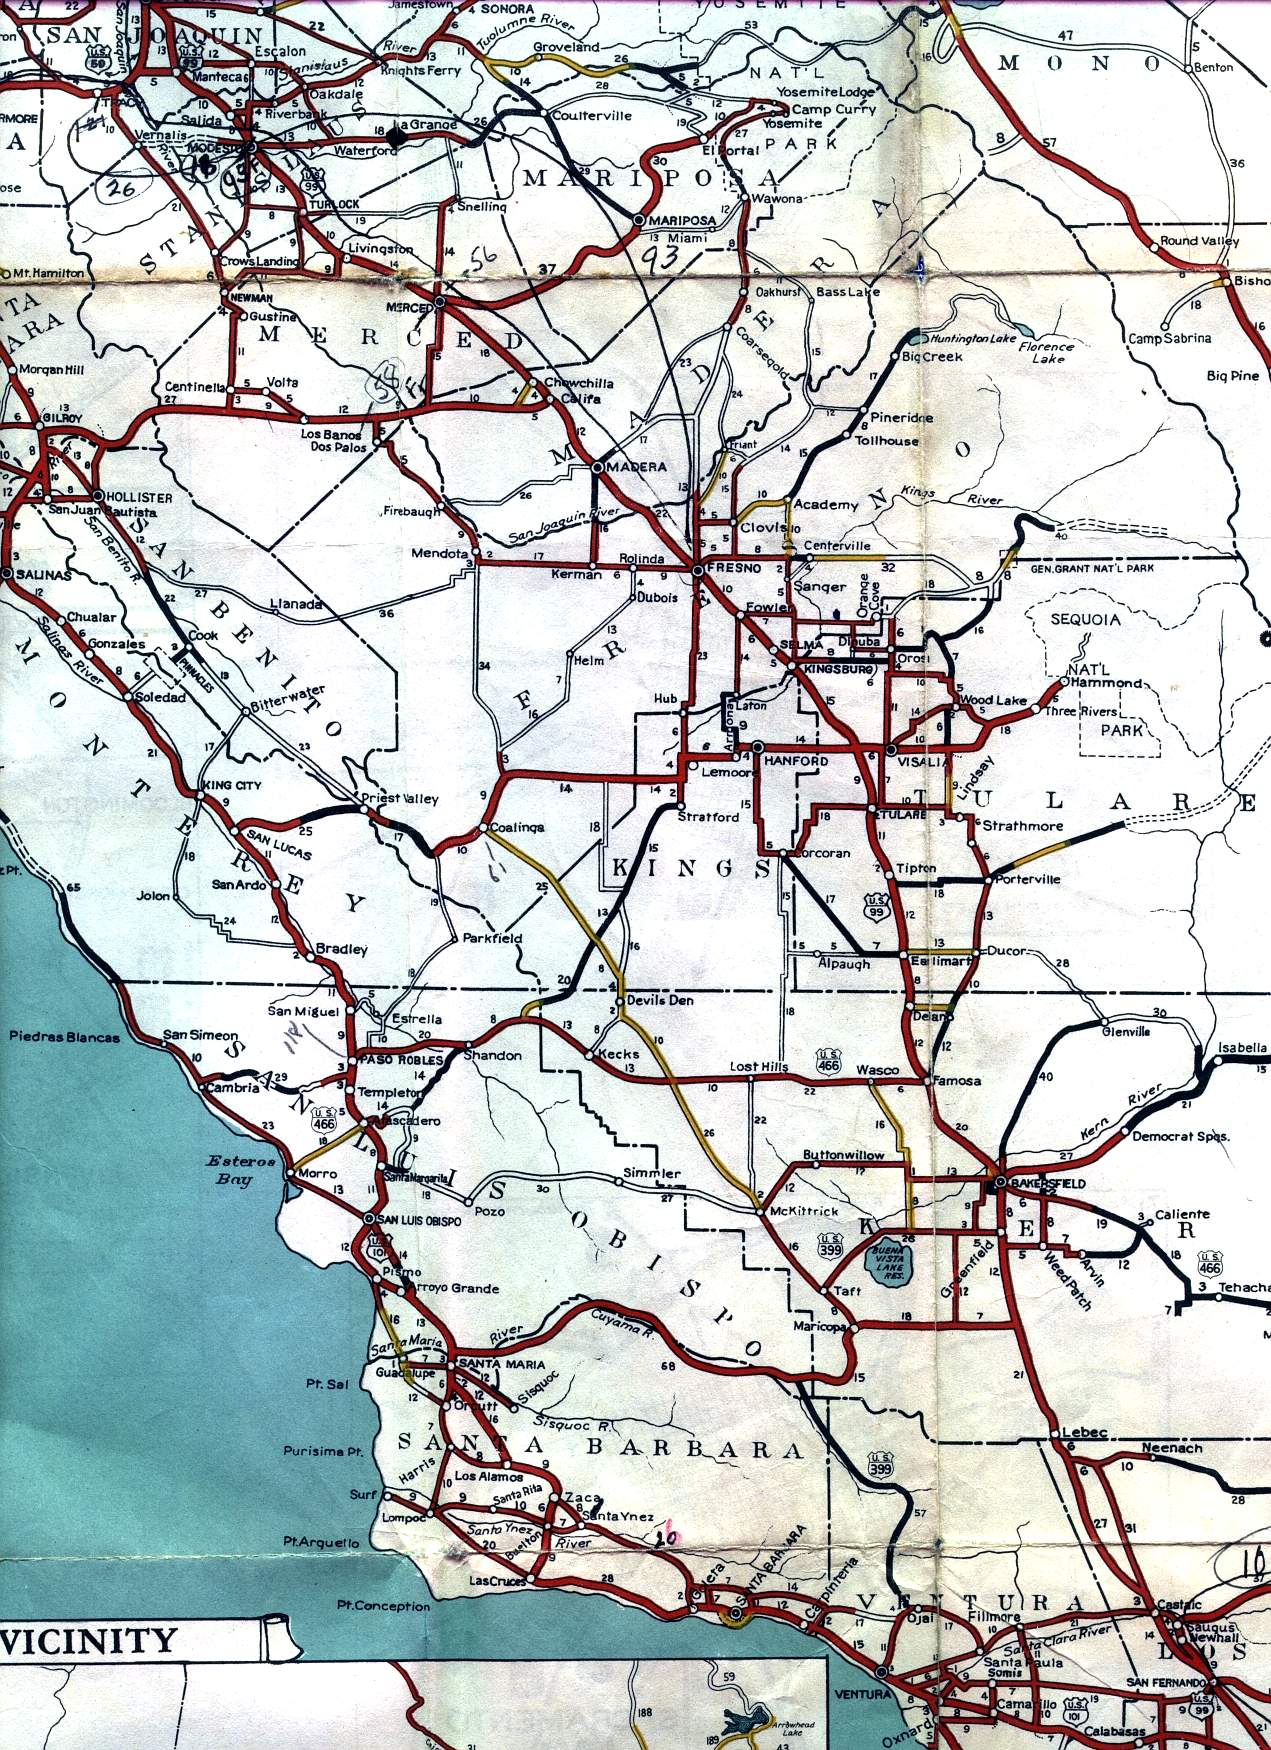 central valley and parts of the central coast on the  californiaofficial highway map. california road signs and sights gallery section of  official